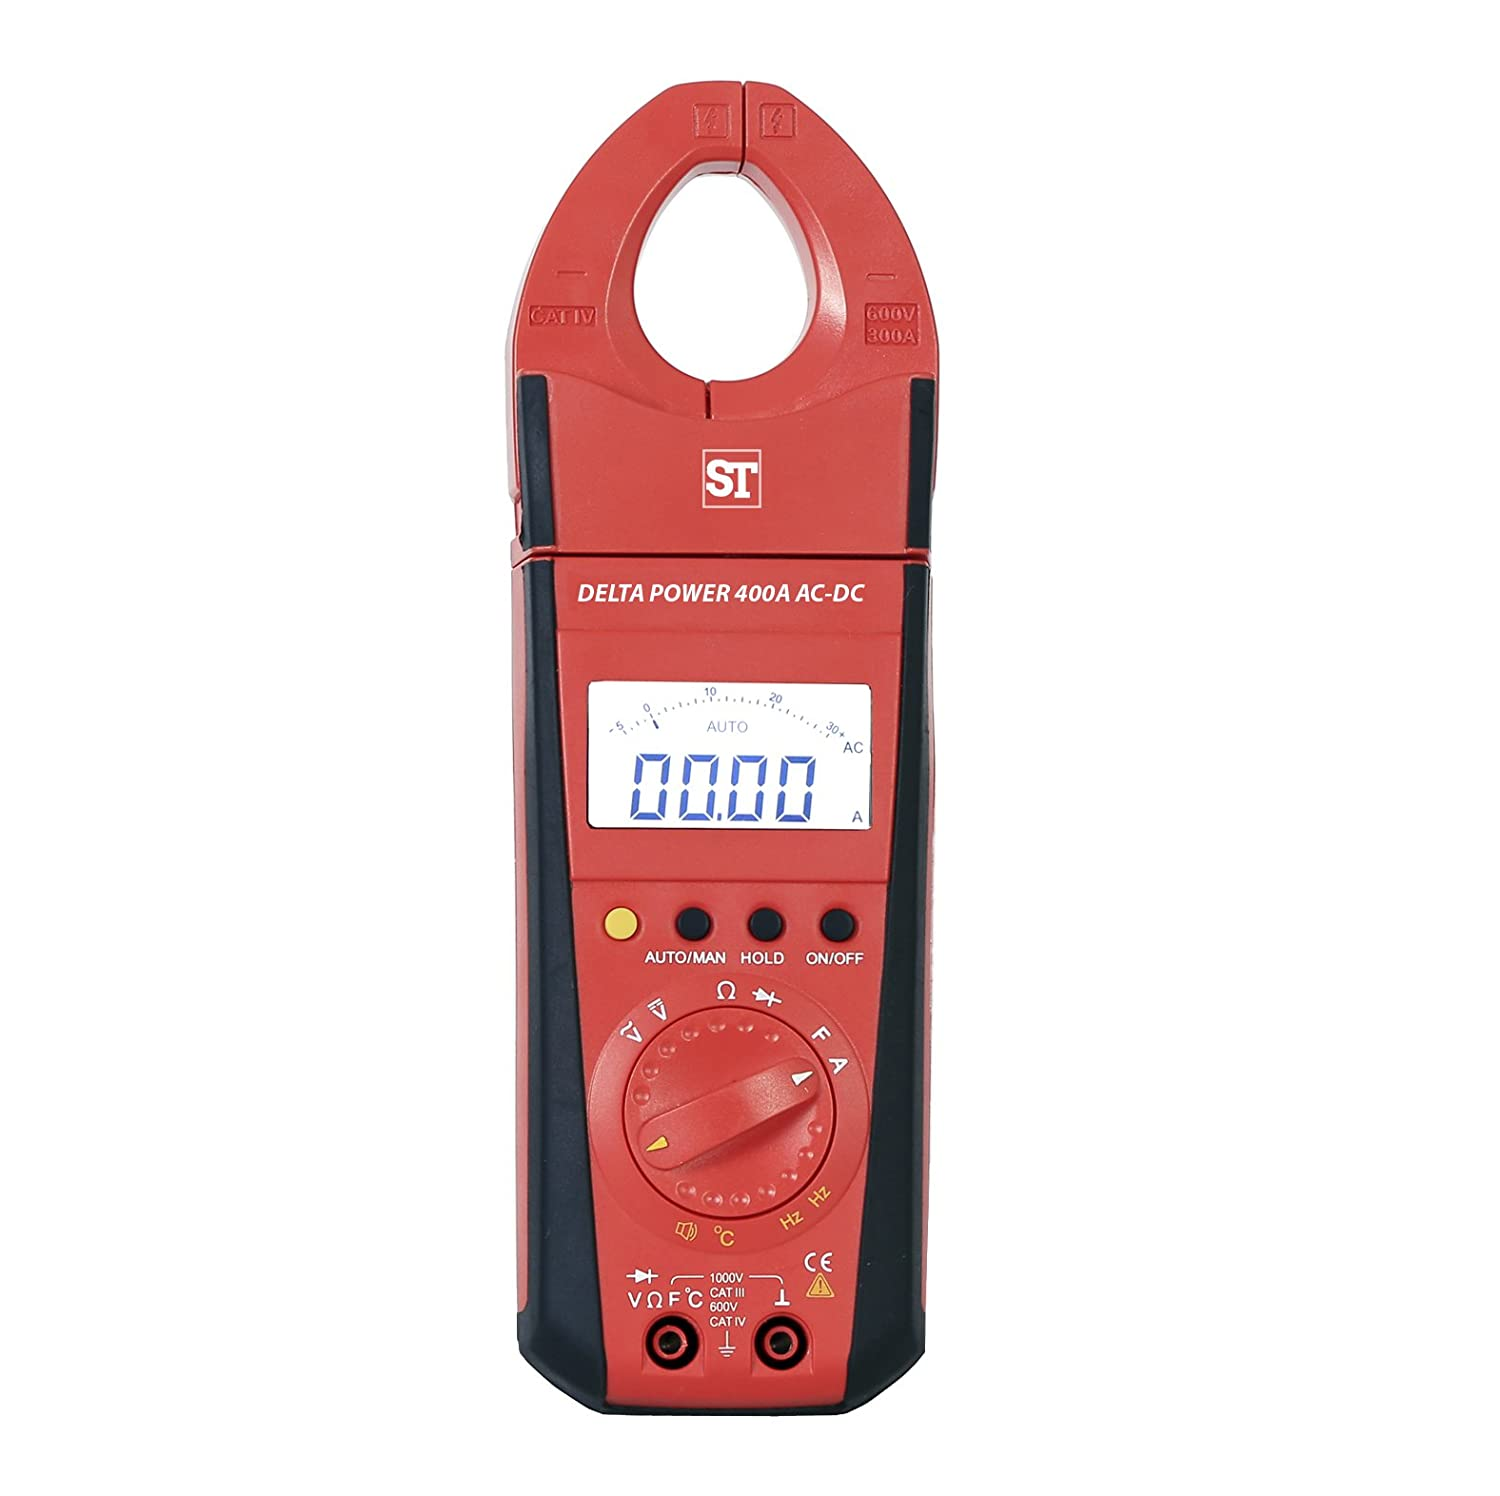 ST DT30–3 nz0000000000 sifam Tinsley Power Zangenamperemeter mit Normal Sonde, AC/DC, 400 A